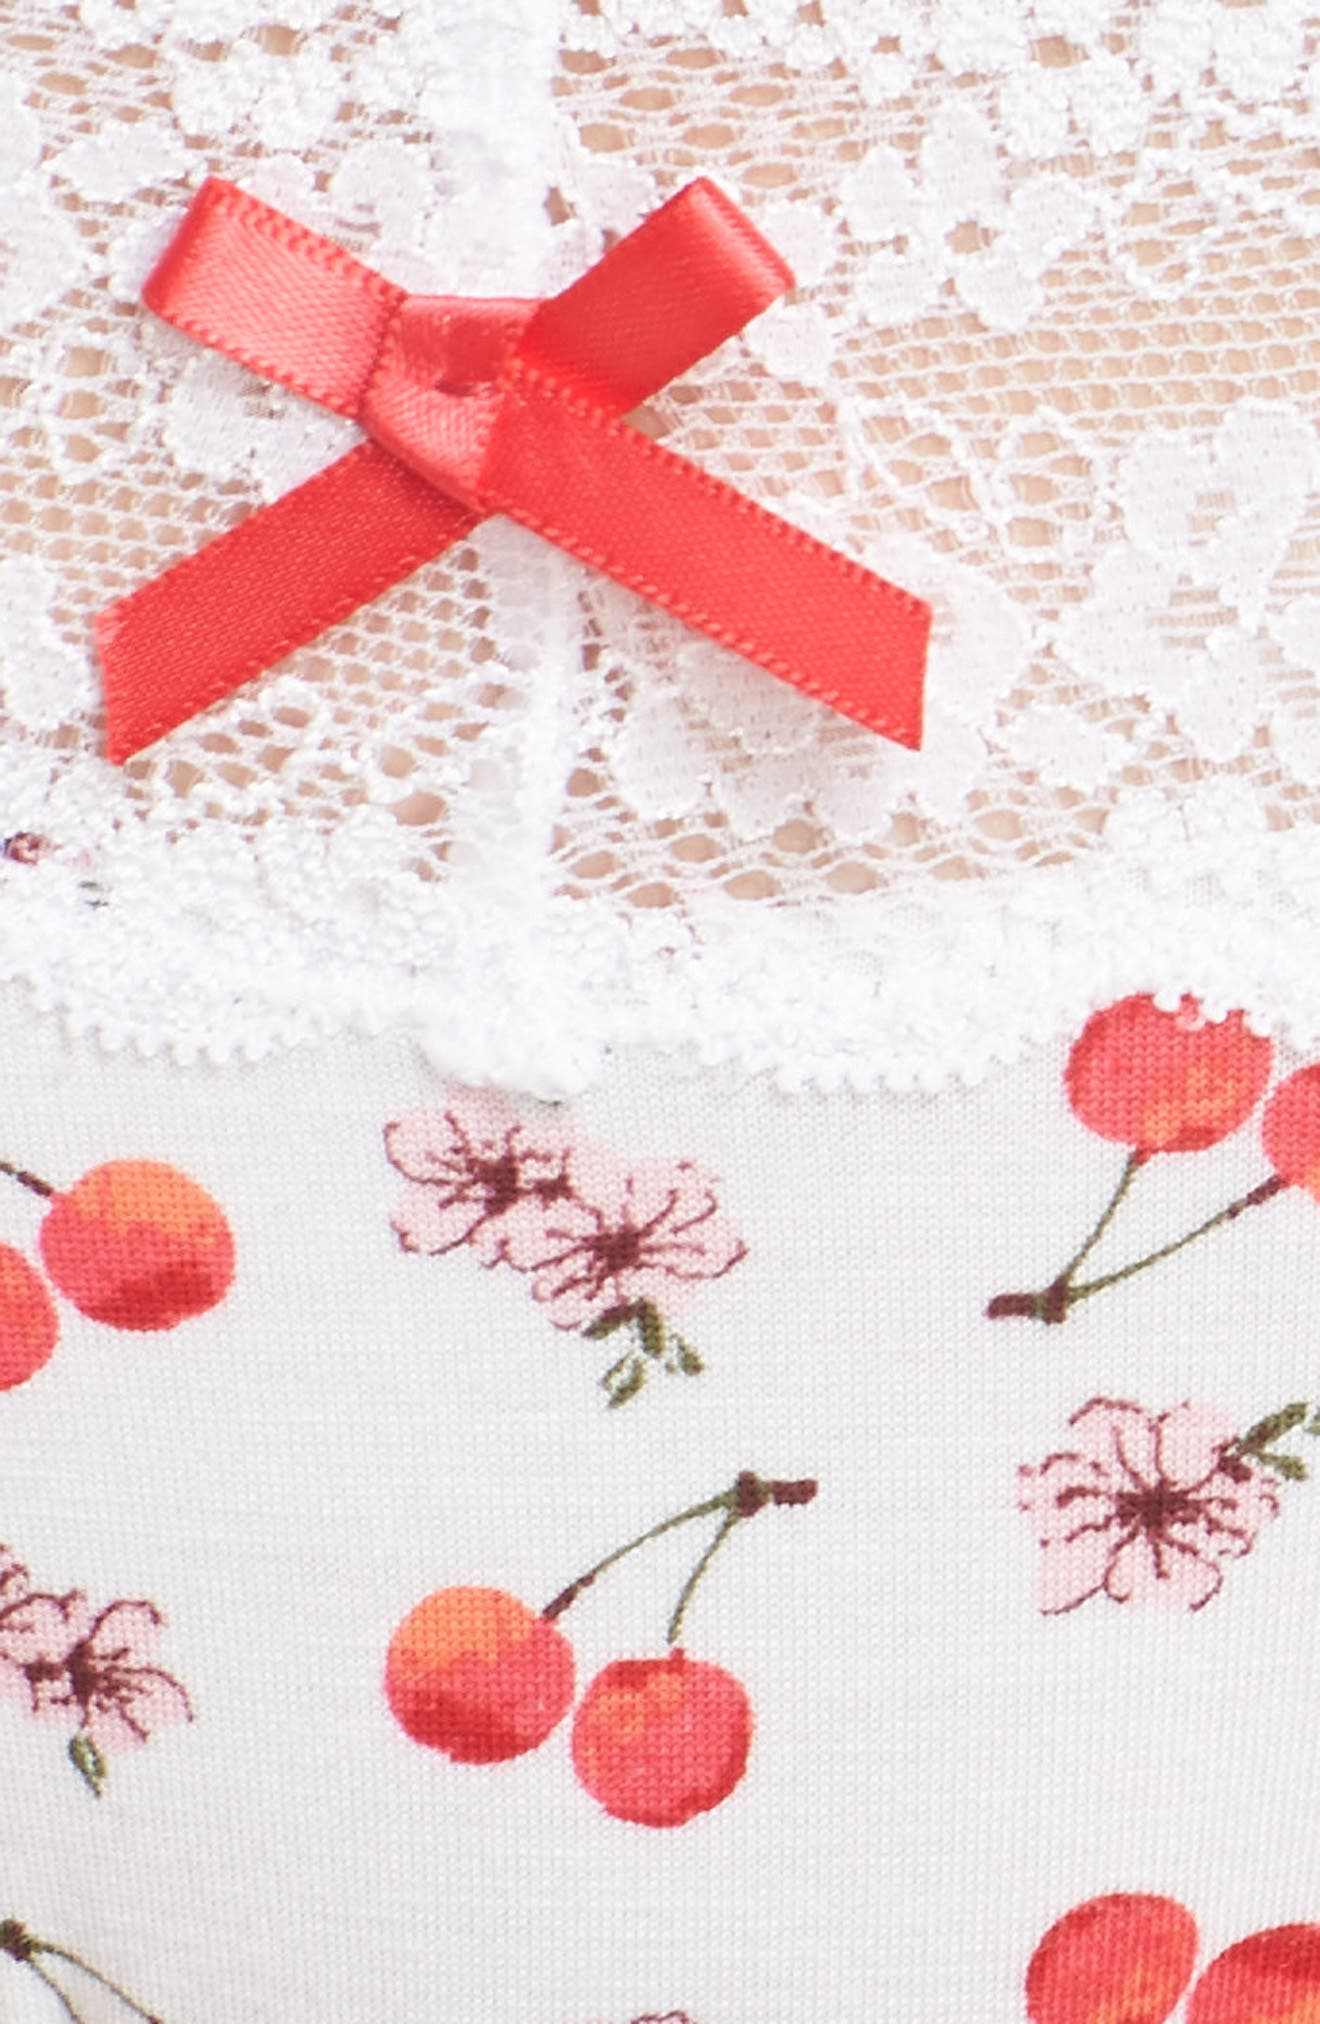 Lace Trim Low Rise Thong,                             Alternate thumbnail 5, color,                             White Cherry Blossom